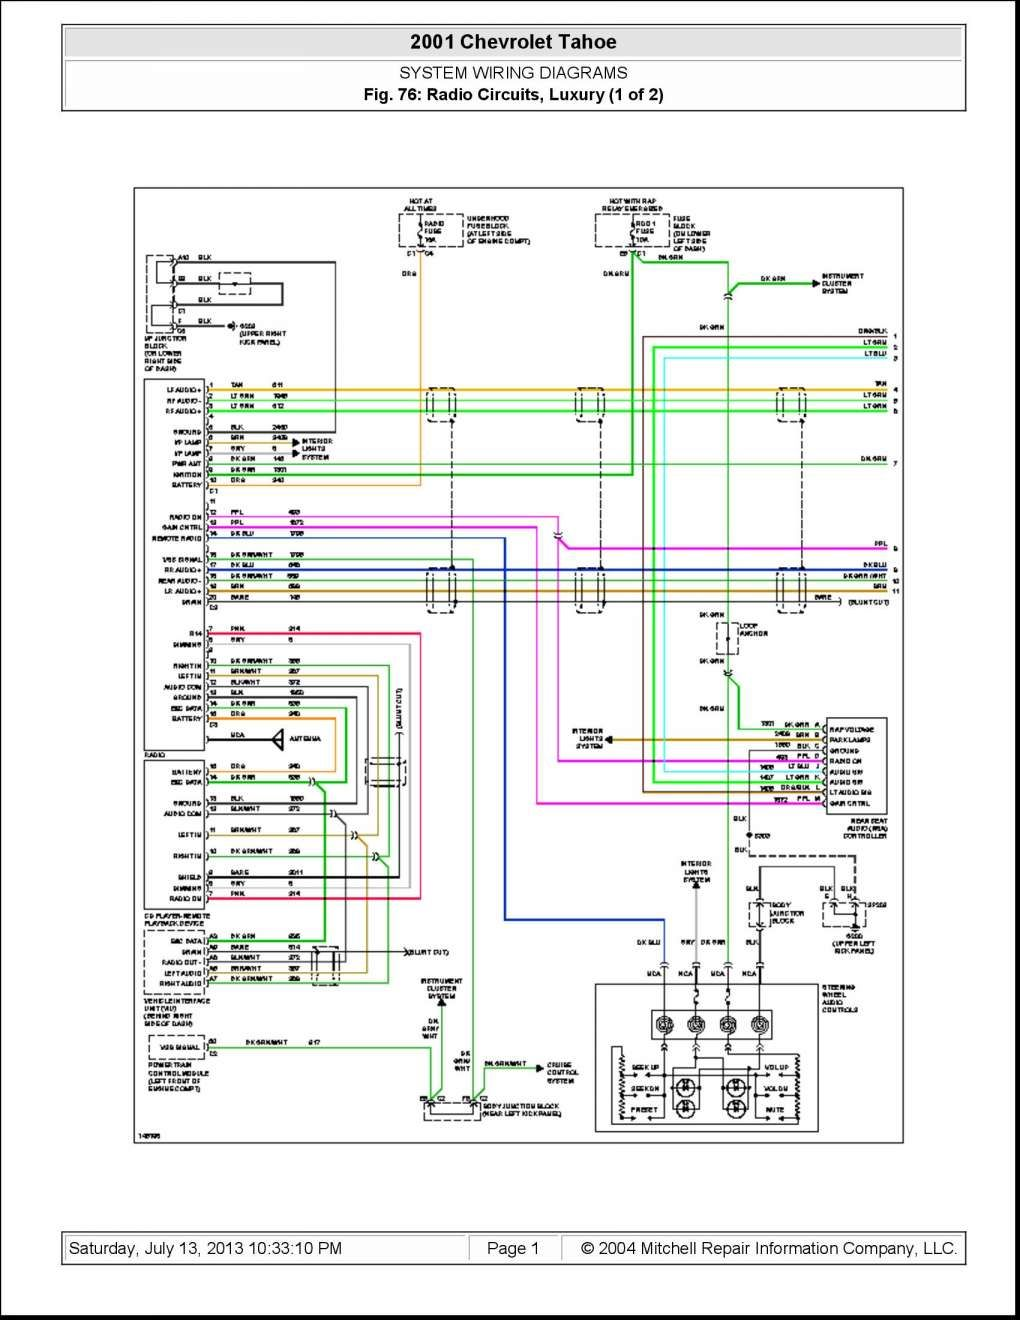 cadillac dts amp wiring diagram - wiring diagram system fund-norm-a -  fund-norm-a.ediliadesign.it  ediliadesign.it